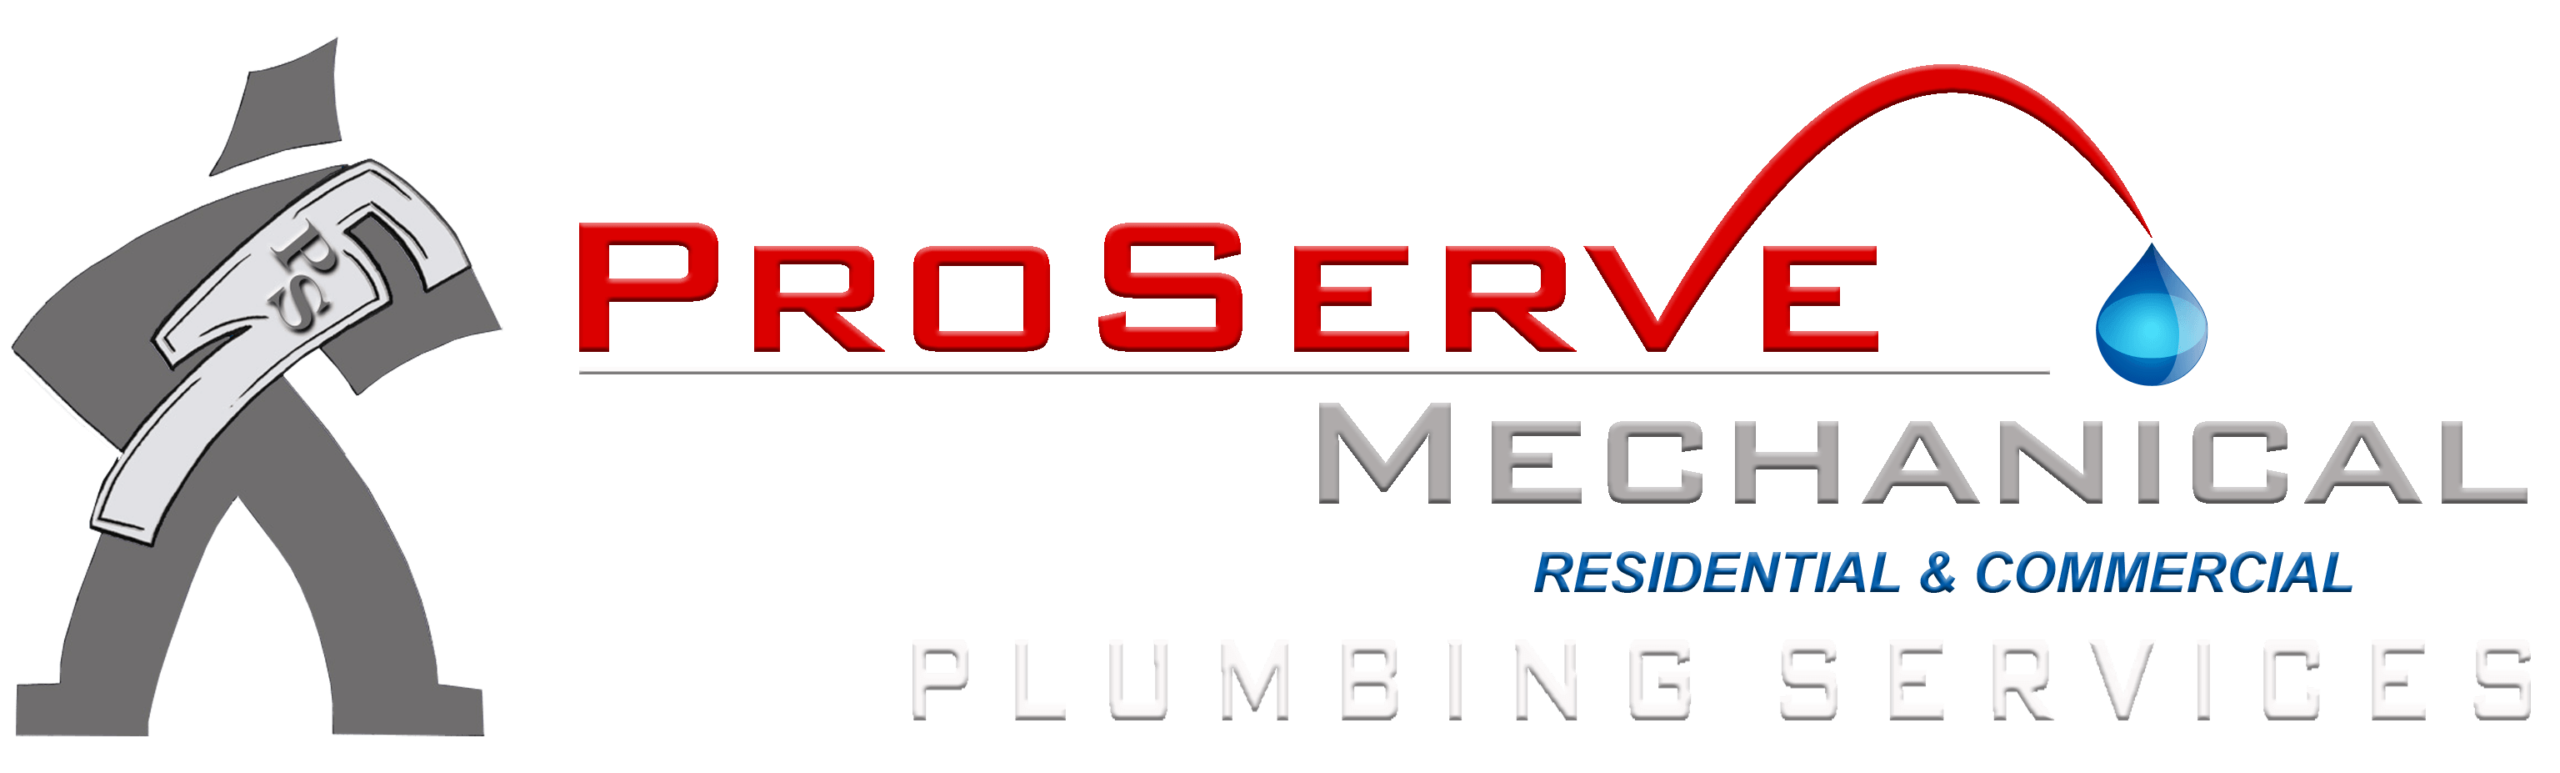 Proserve mechanical for all your plumbing needs